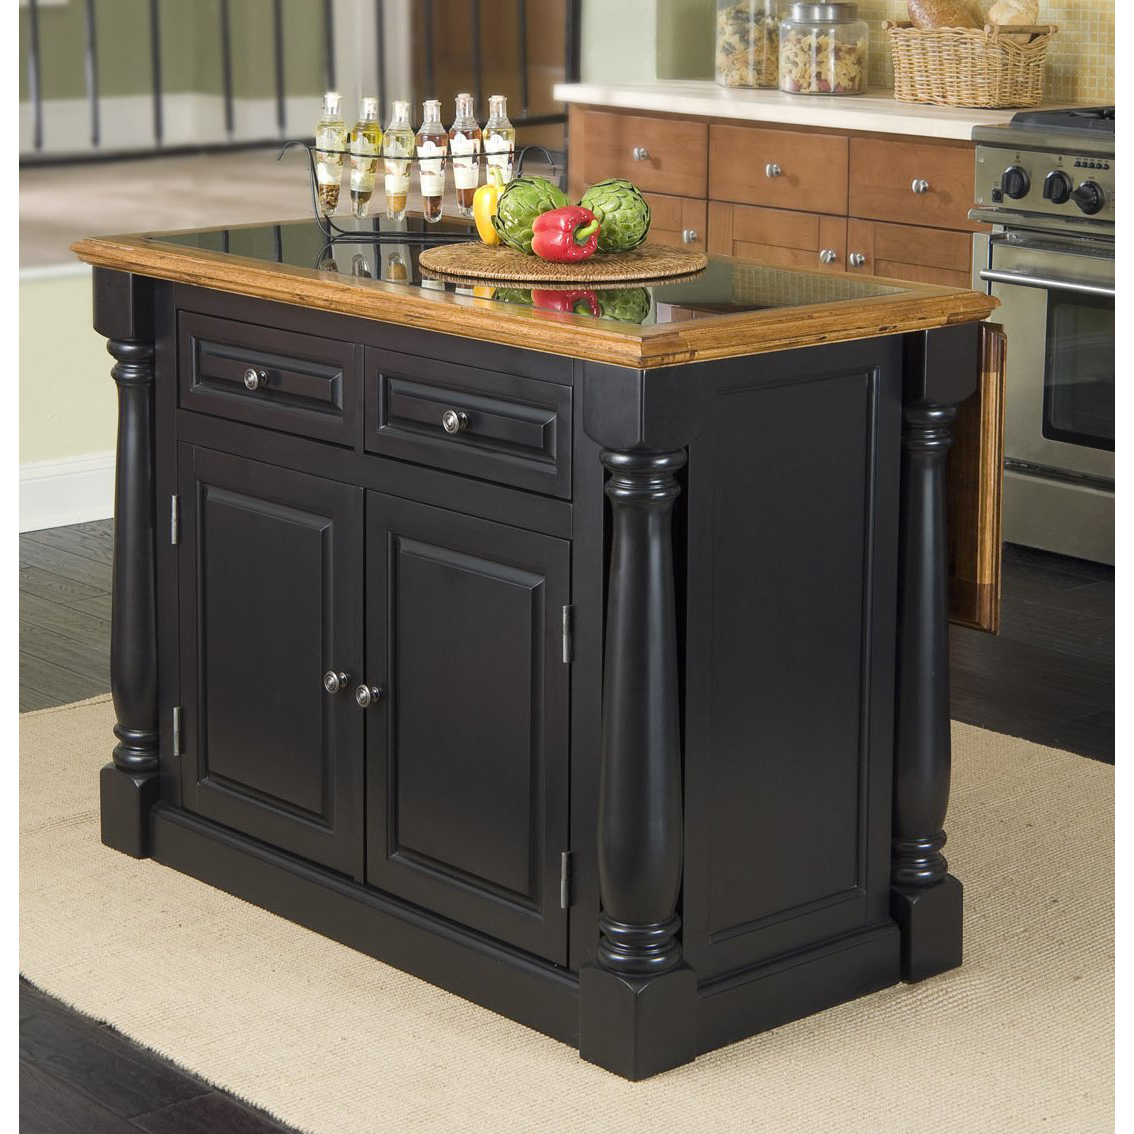 2018 top 10 best kitchen islands carts centers utility Kitchen utility island